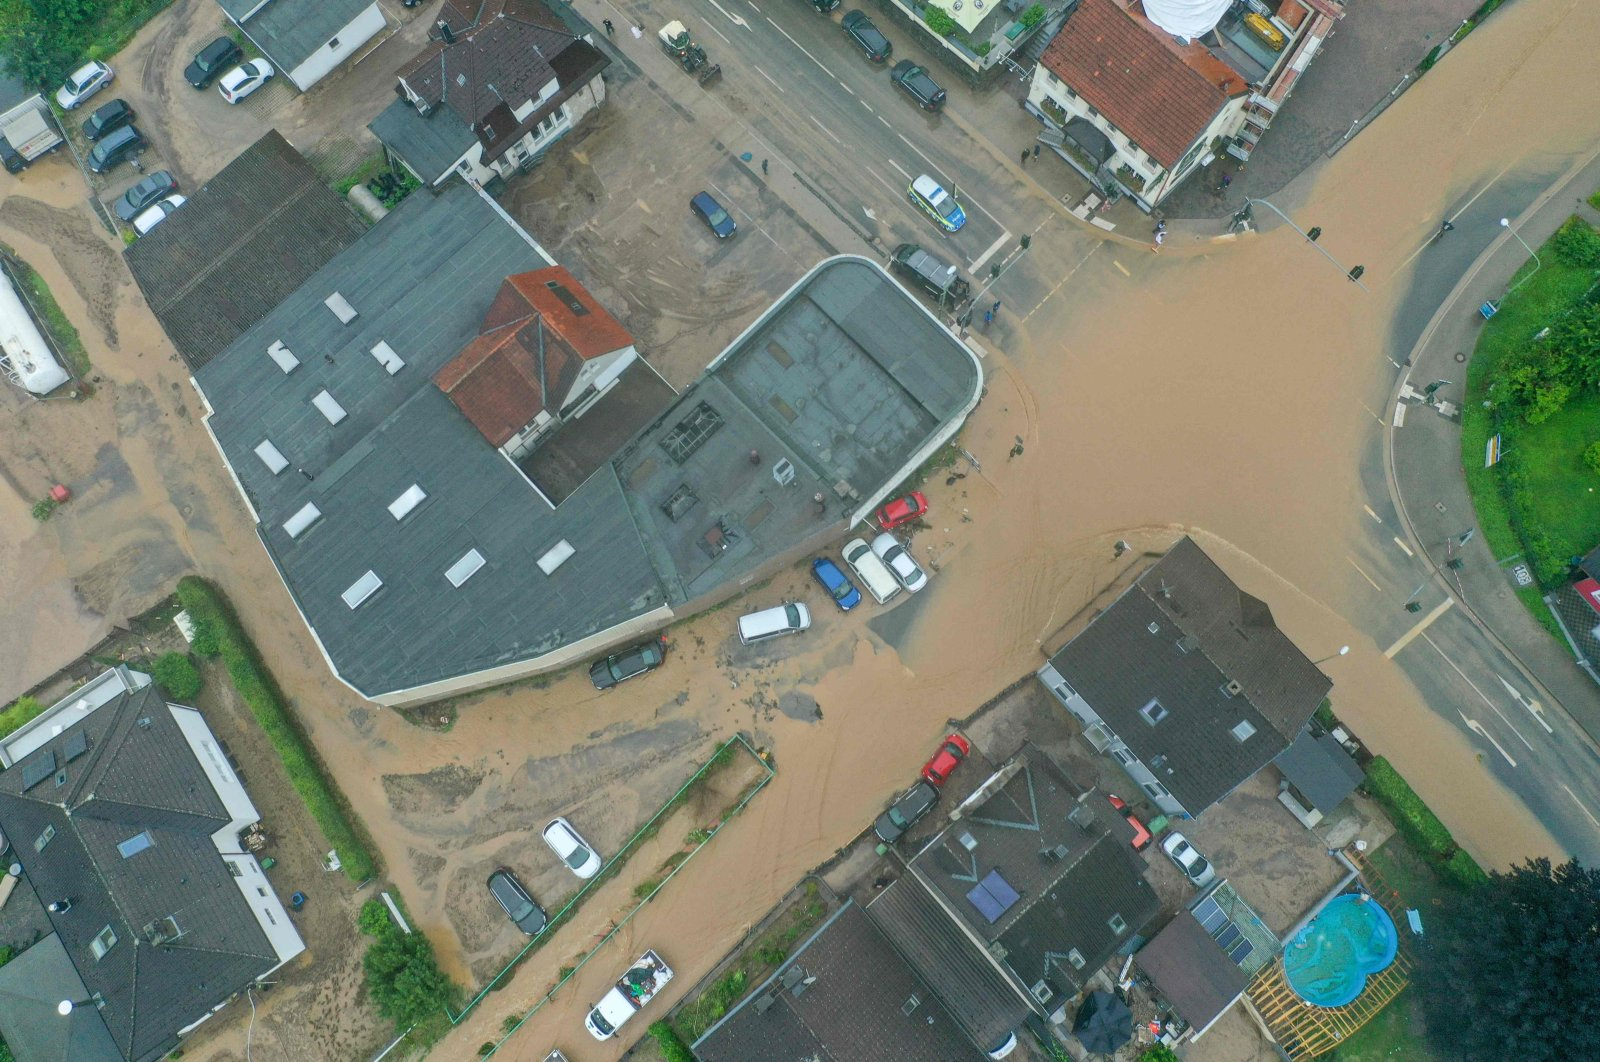 An aerial view of a flooded intersection in Hagen, western Germany, July 14, 2021, after heavy rain hit parts of the country, causing widespread flooding. (AFP Photo)